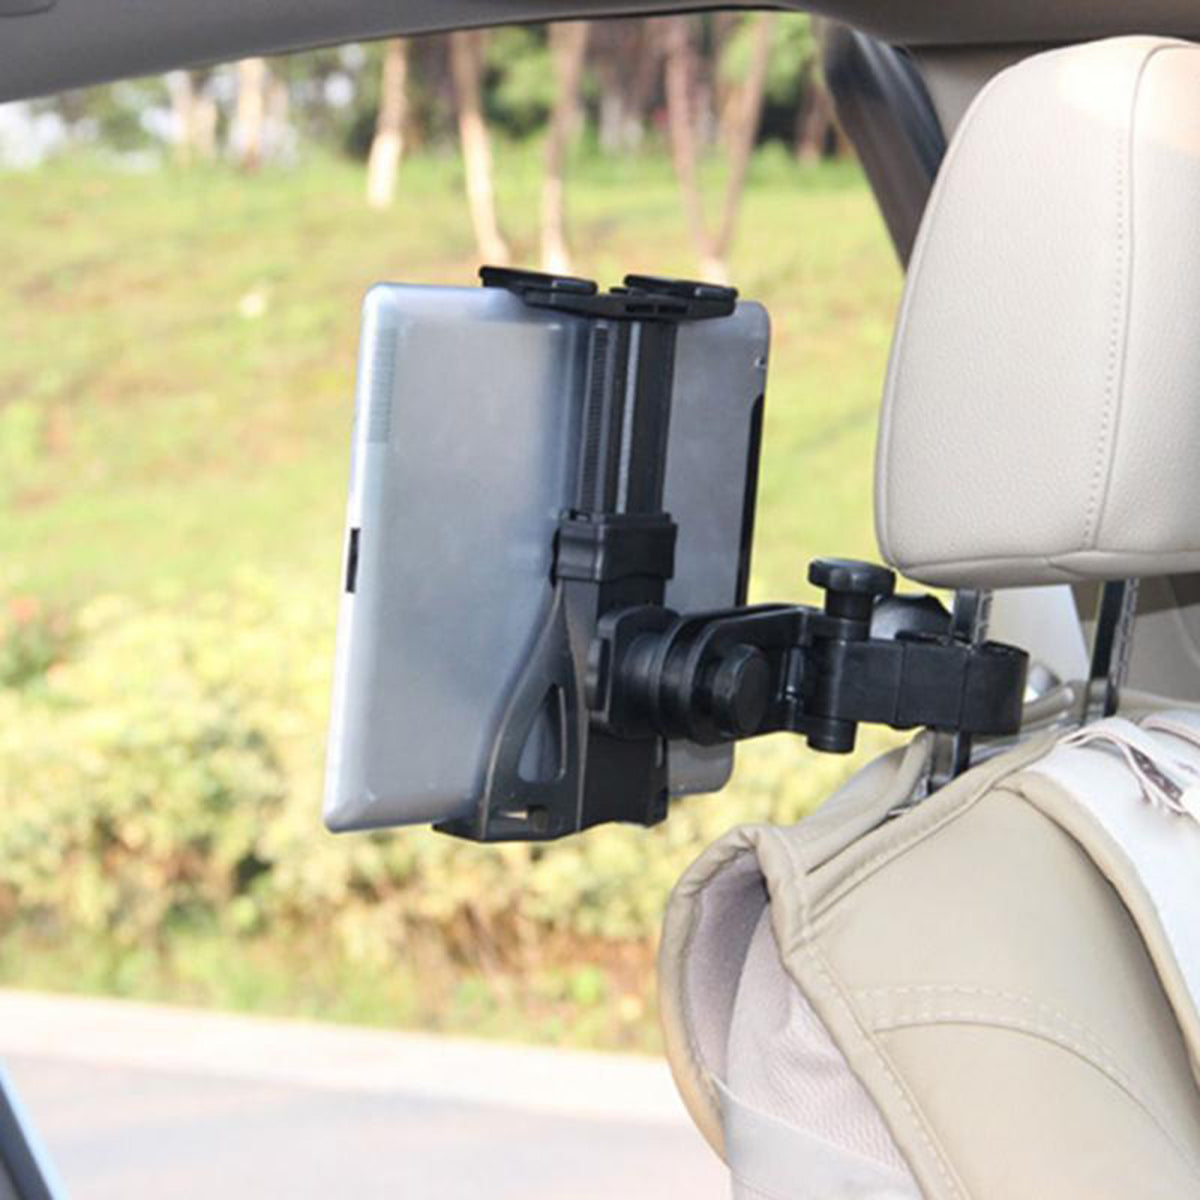 Tablet Holder for Car Seat Back